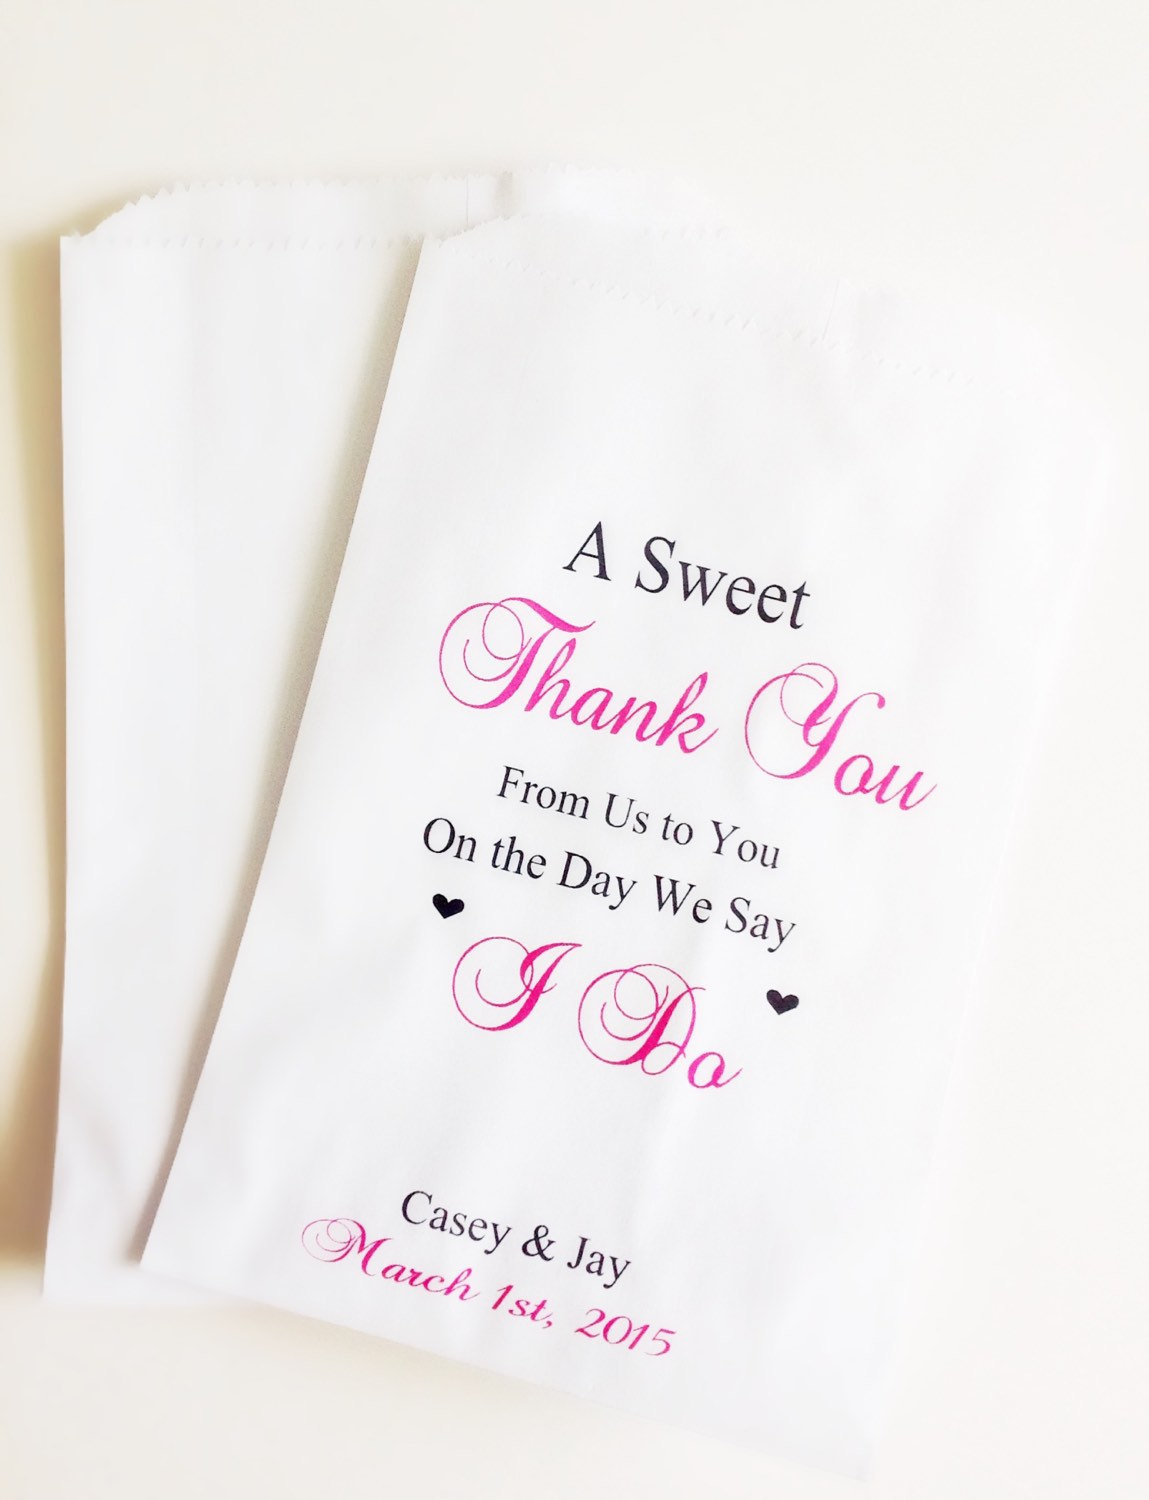 Wedding Favor Bags Nz : ... Favor Bags, Wedding Favor Bags, Candy Bar Bags, Candy T - Favor Bags